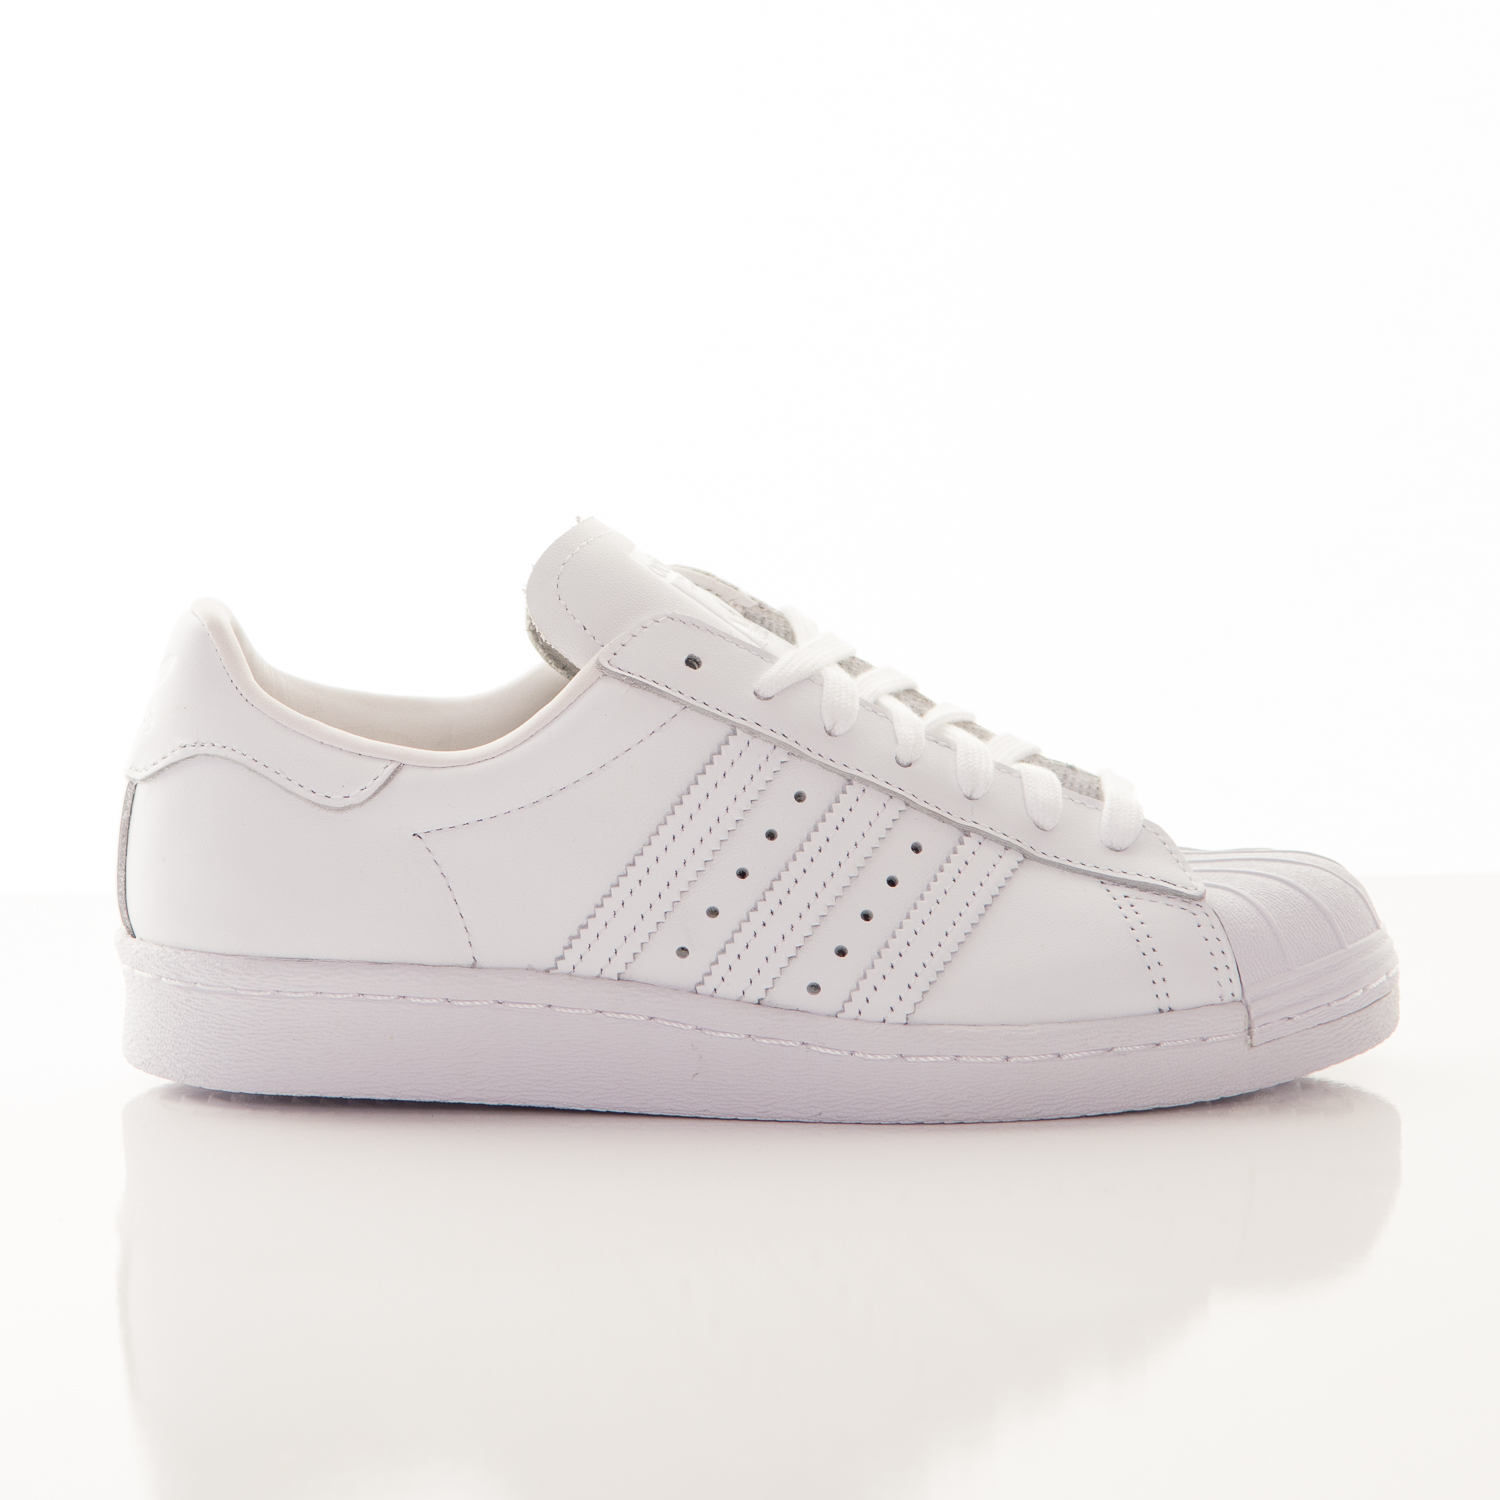 Tenisky Adidas Originals Superstar White 39 1/3